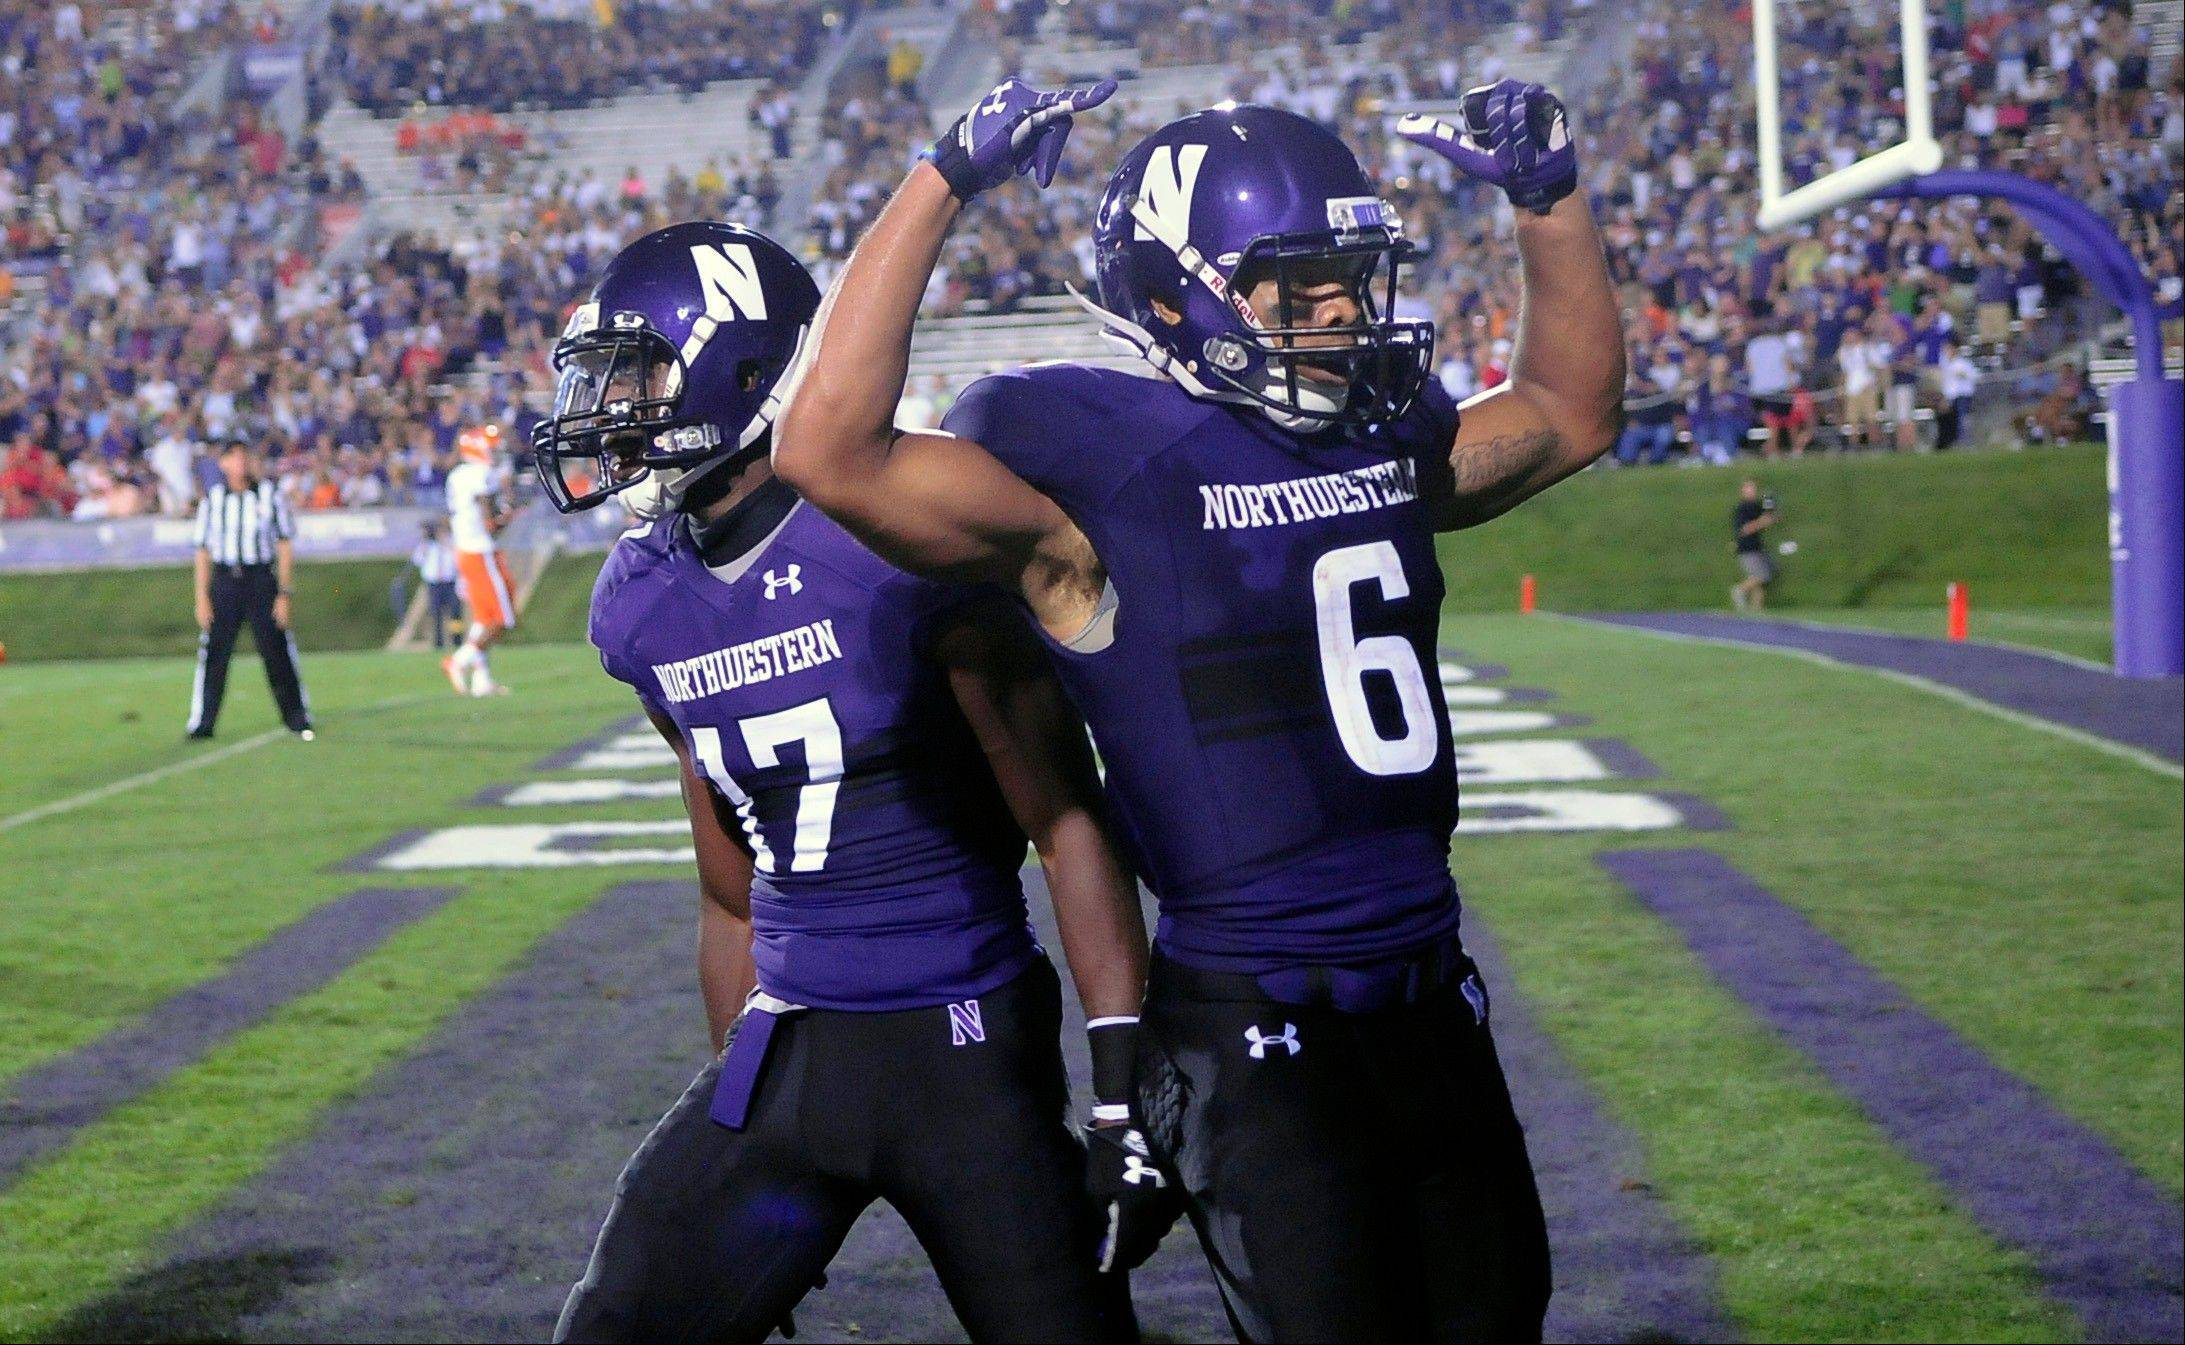 Northwestern's Tony Jones, right, celebrates his touchdown with teammate Rashad Lawrence in the second half of last week's home win over Syracuse.